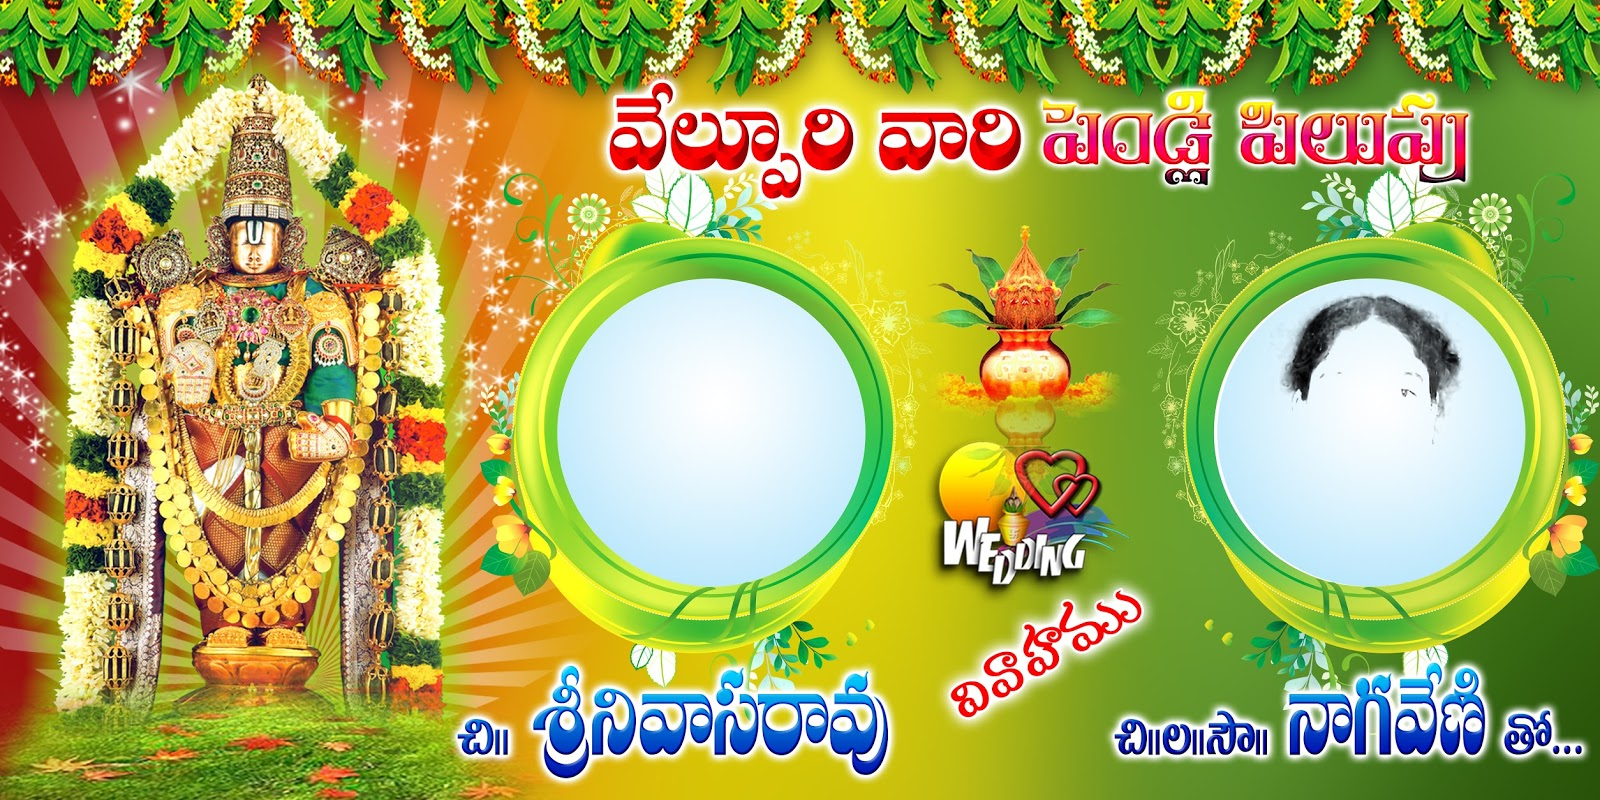 Wedding Banners Design Psd Template Free Abhaya Ads Flex Printing